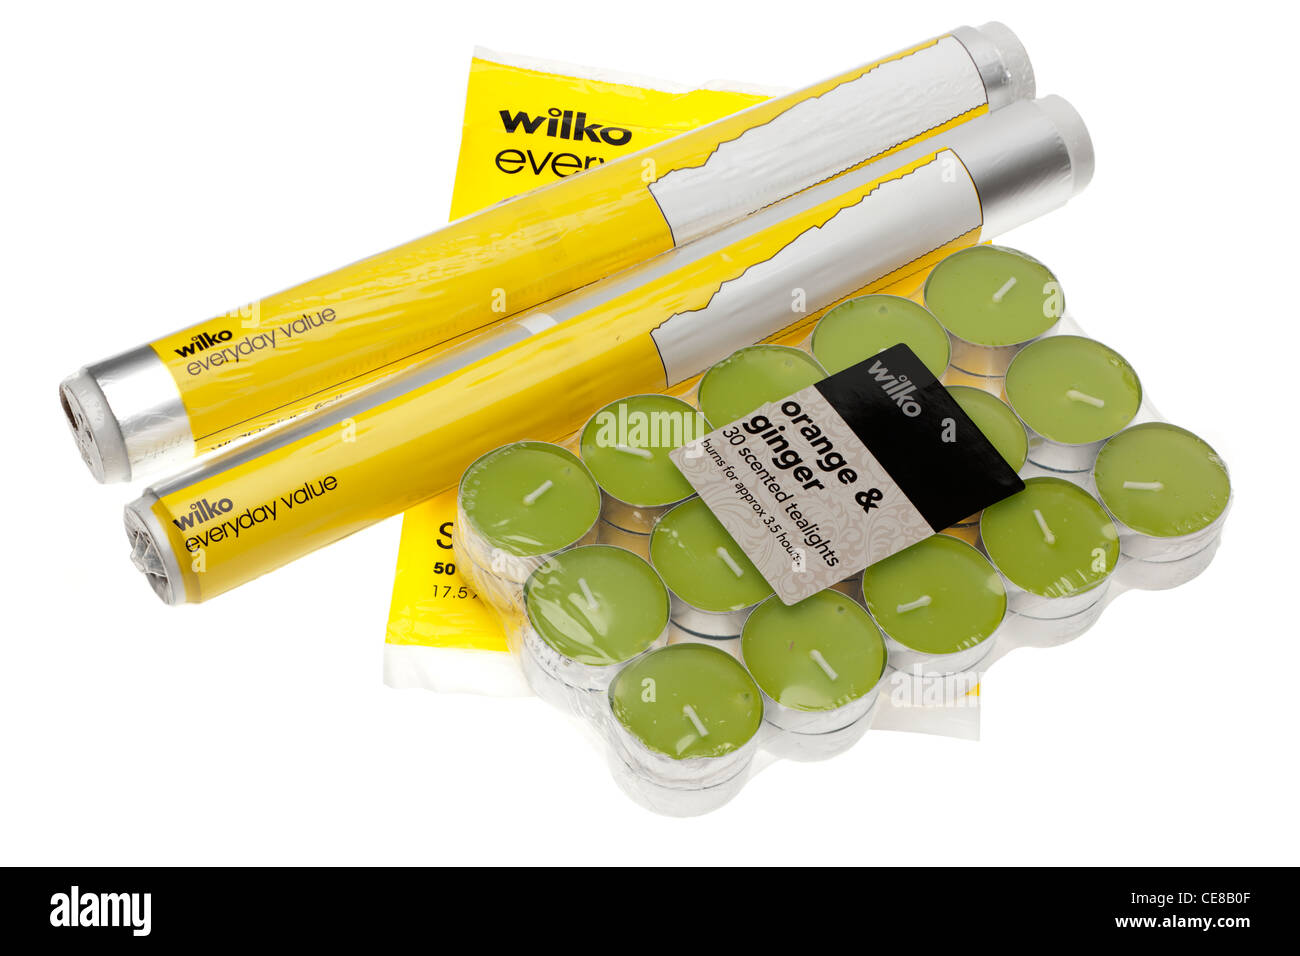 Wilko shop products - Stock Image